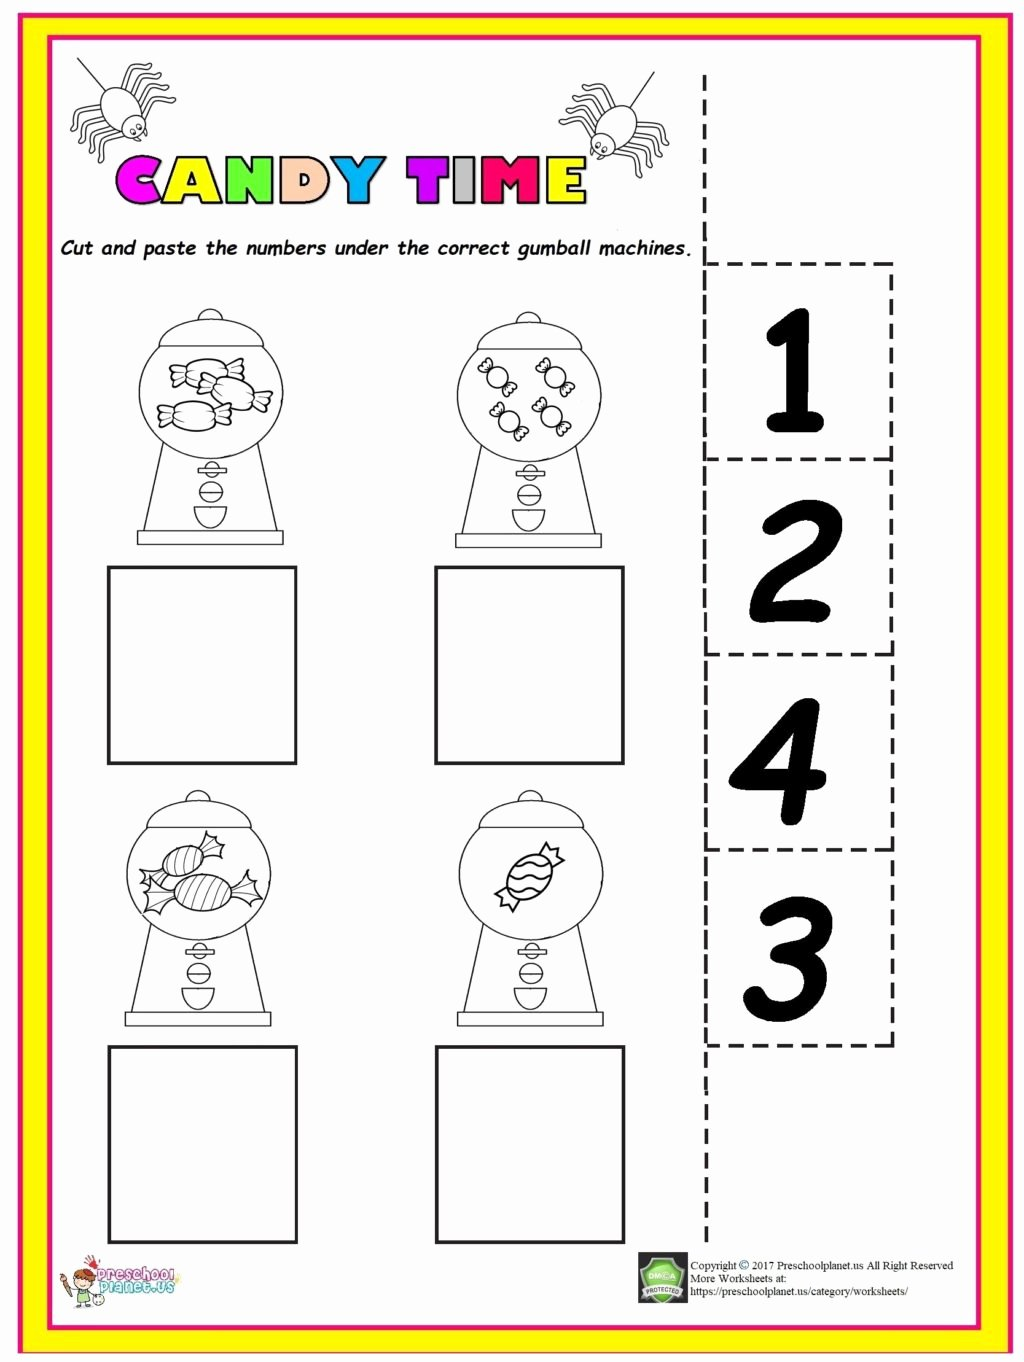 Easy Worksheets for Preschoolers Awesome Worksheet Easy Candy Counting Worksheet Preschool Homework